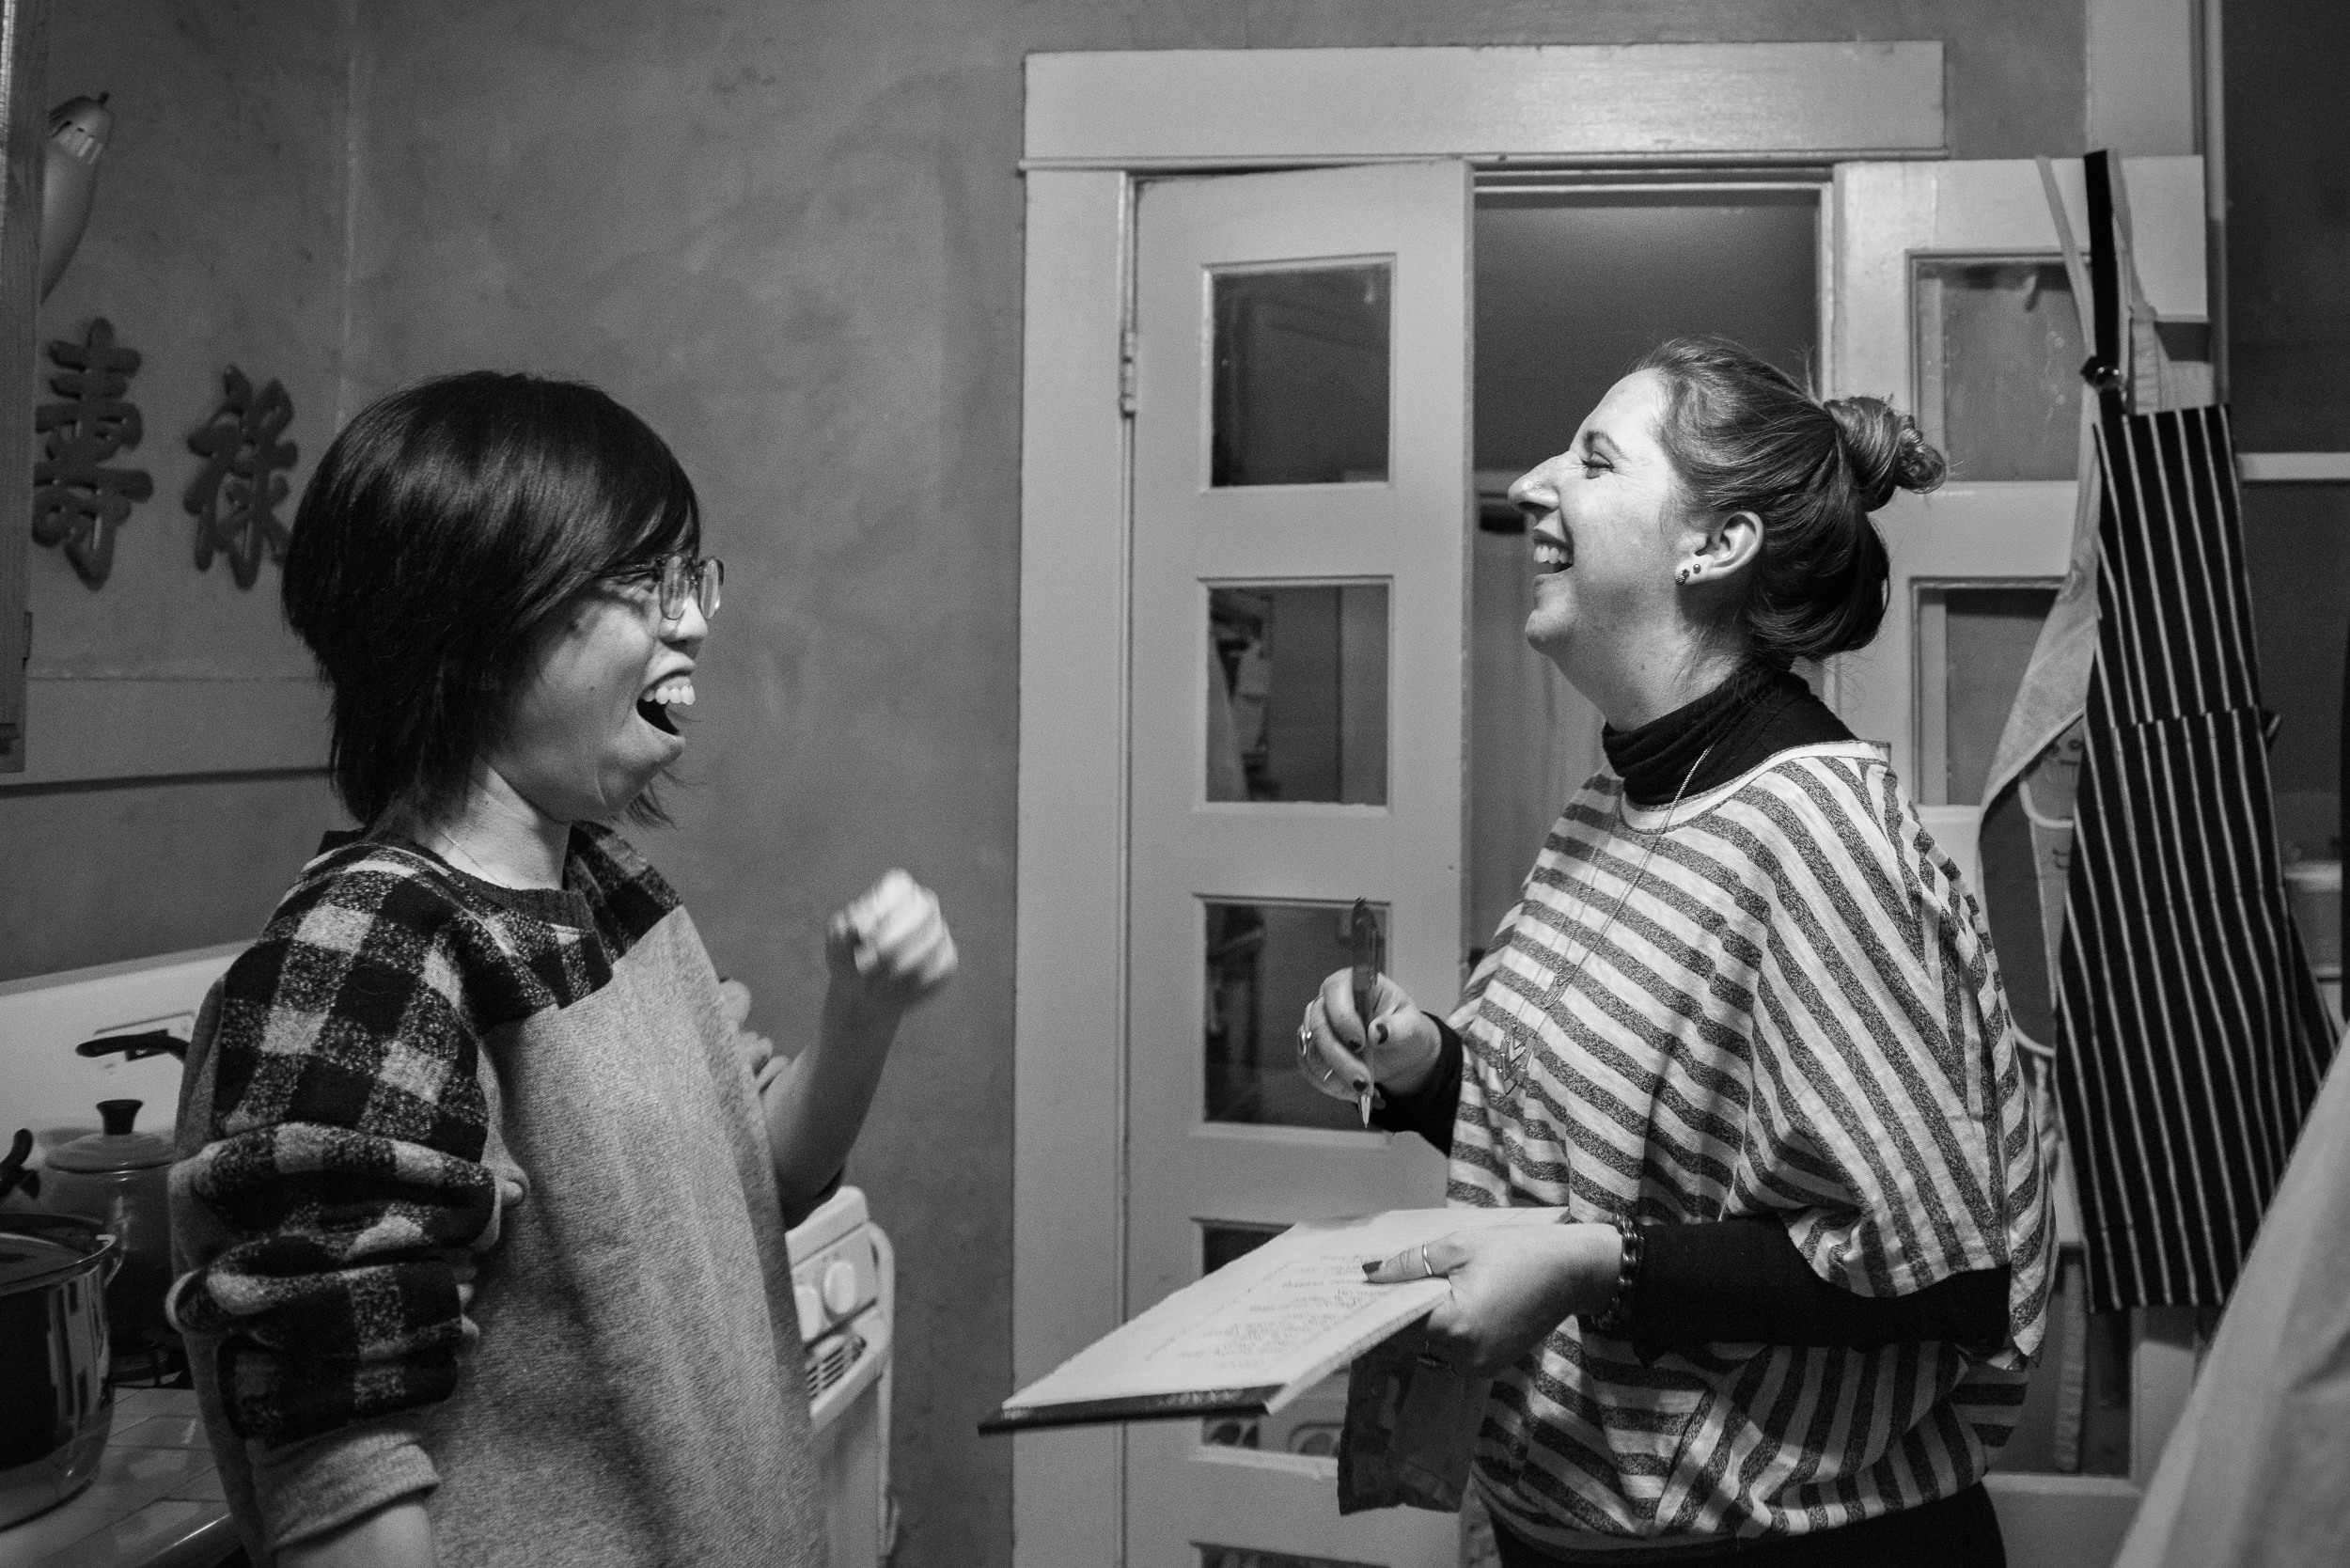 Molly Rees Photo - Black and White Documentary Family Photography in Denver, Colorado - friends laughing by M. Menschel